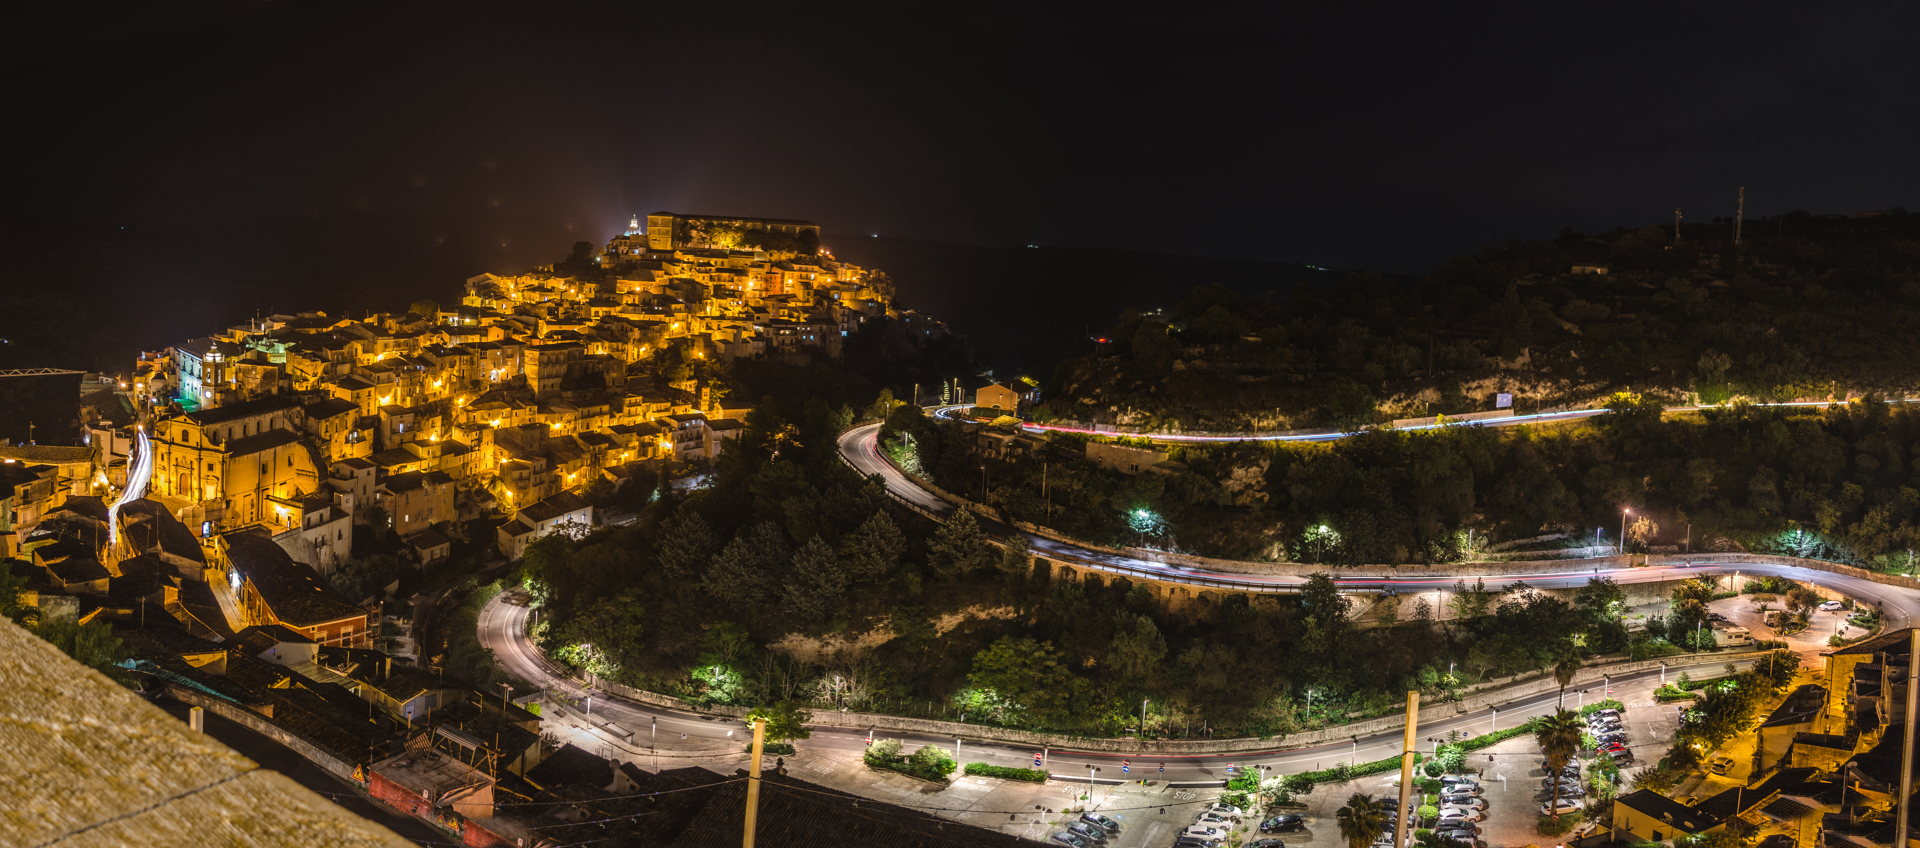 ragusa, ragusa at night, ragusa panorama, ragusa ibla, ragusa drone, aerial view of ragusa, aerial ragusa ibla, best places to travel in sicily, sicily, italy, travel